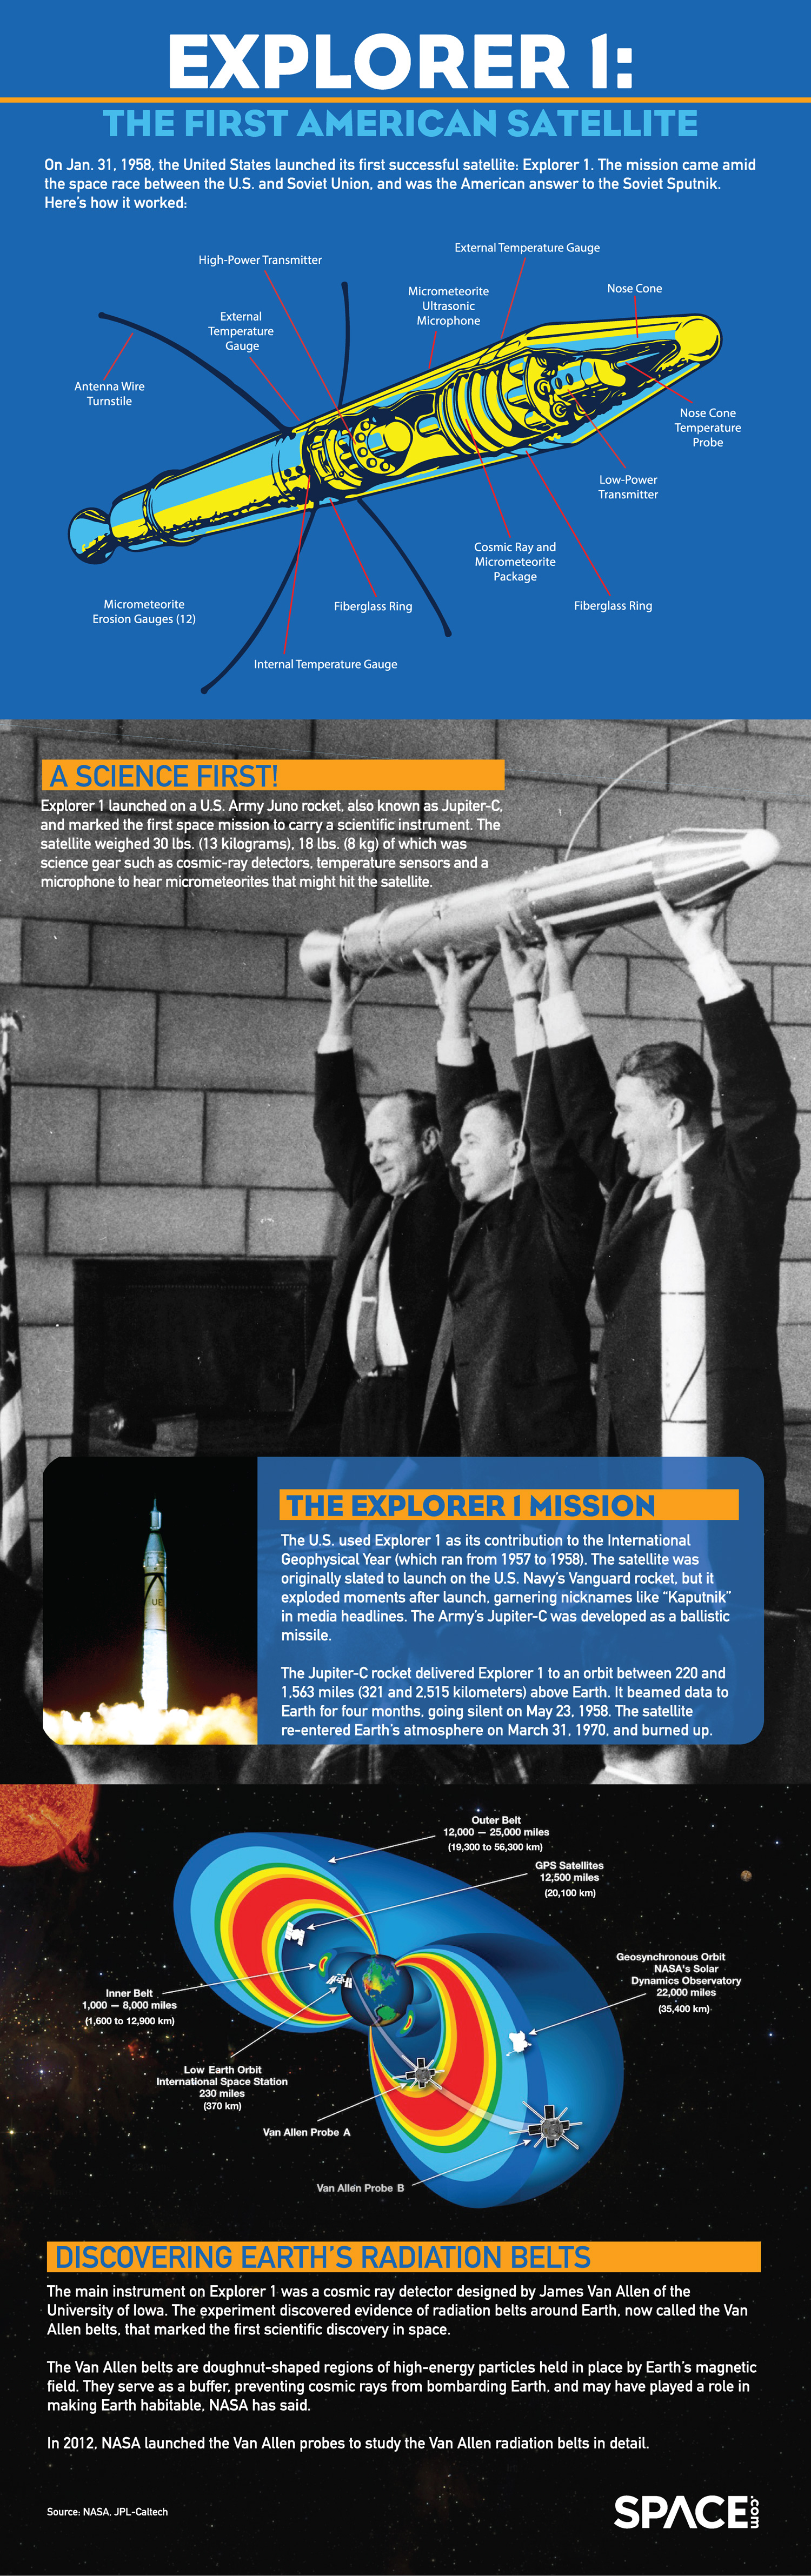 On Jan. 31, 1958, the United States launched its first successful satellite: Explorer 1. See how the historic mission worked in this infographic.